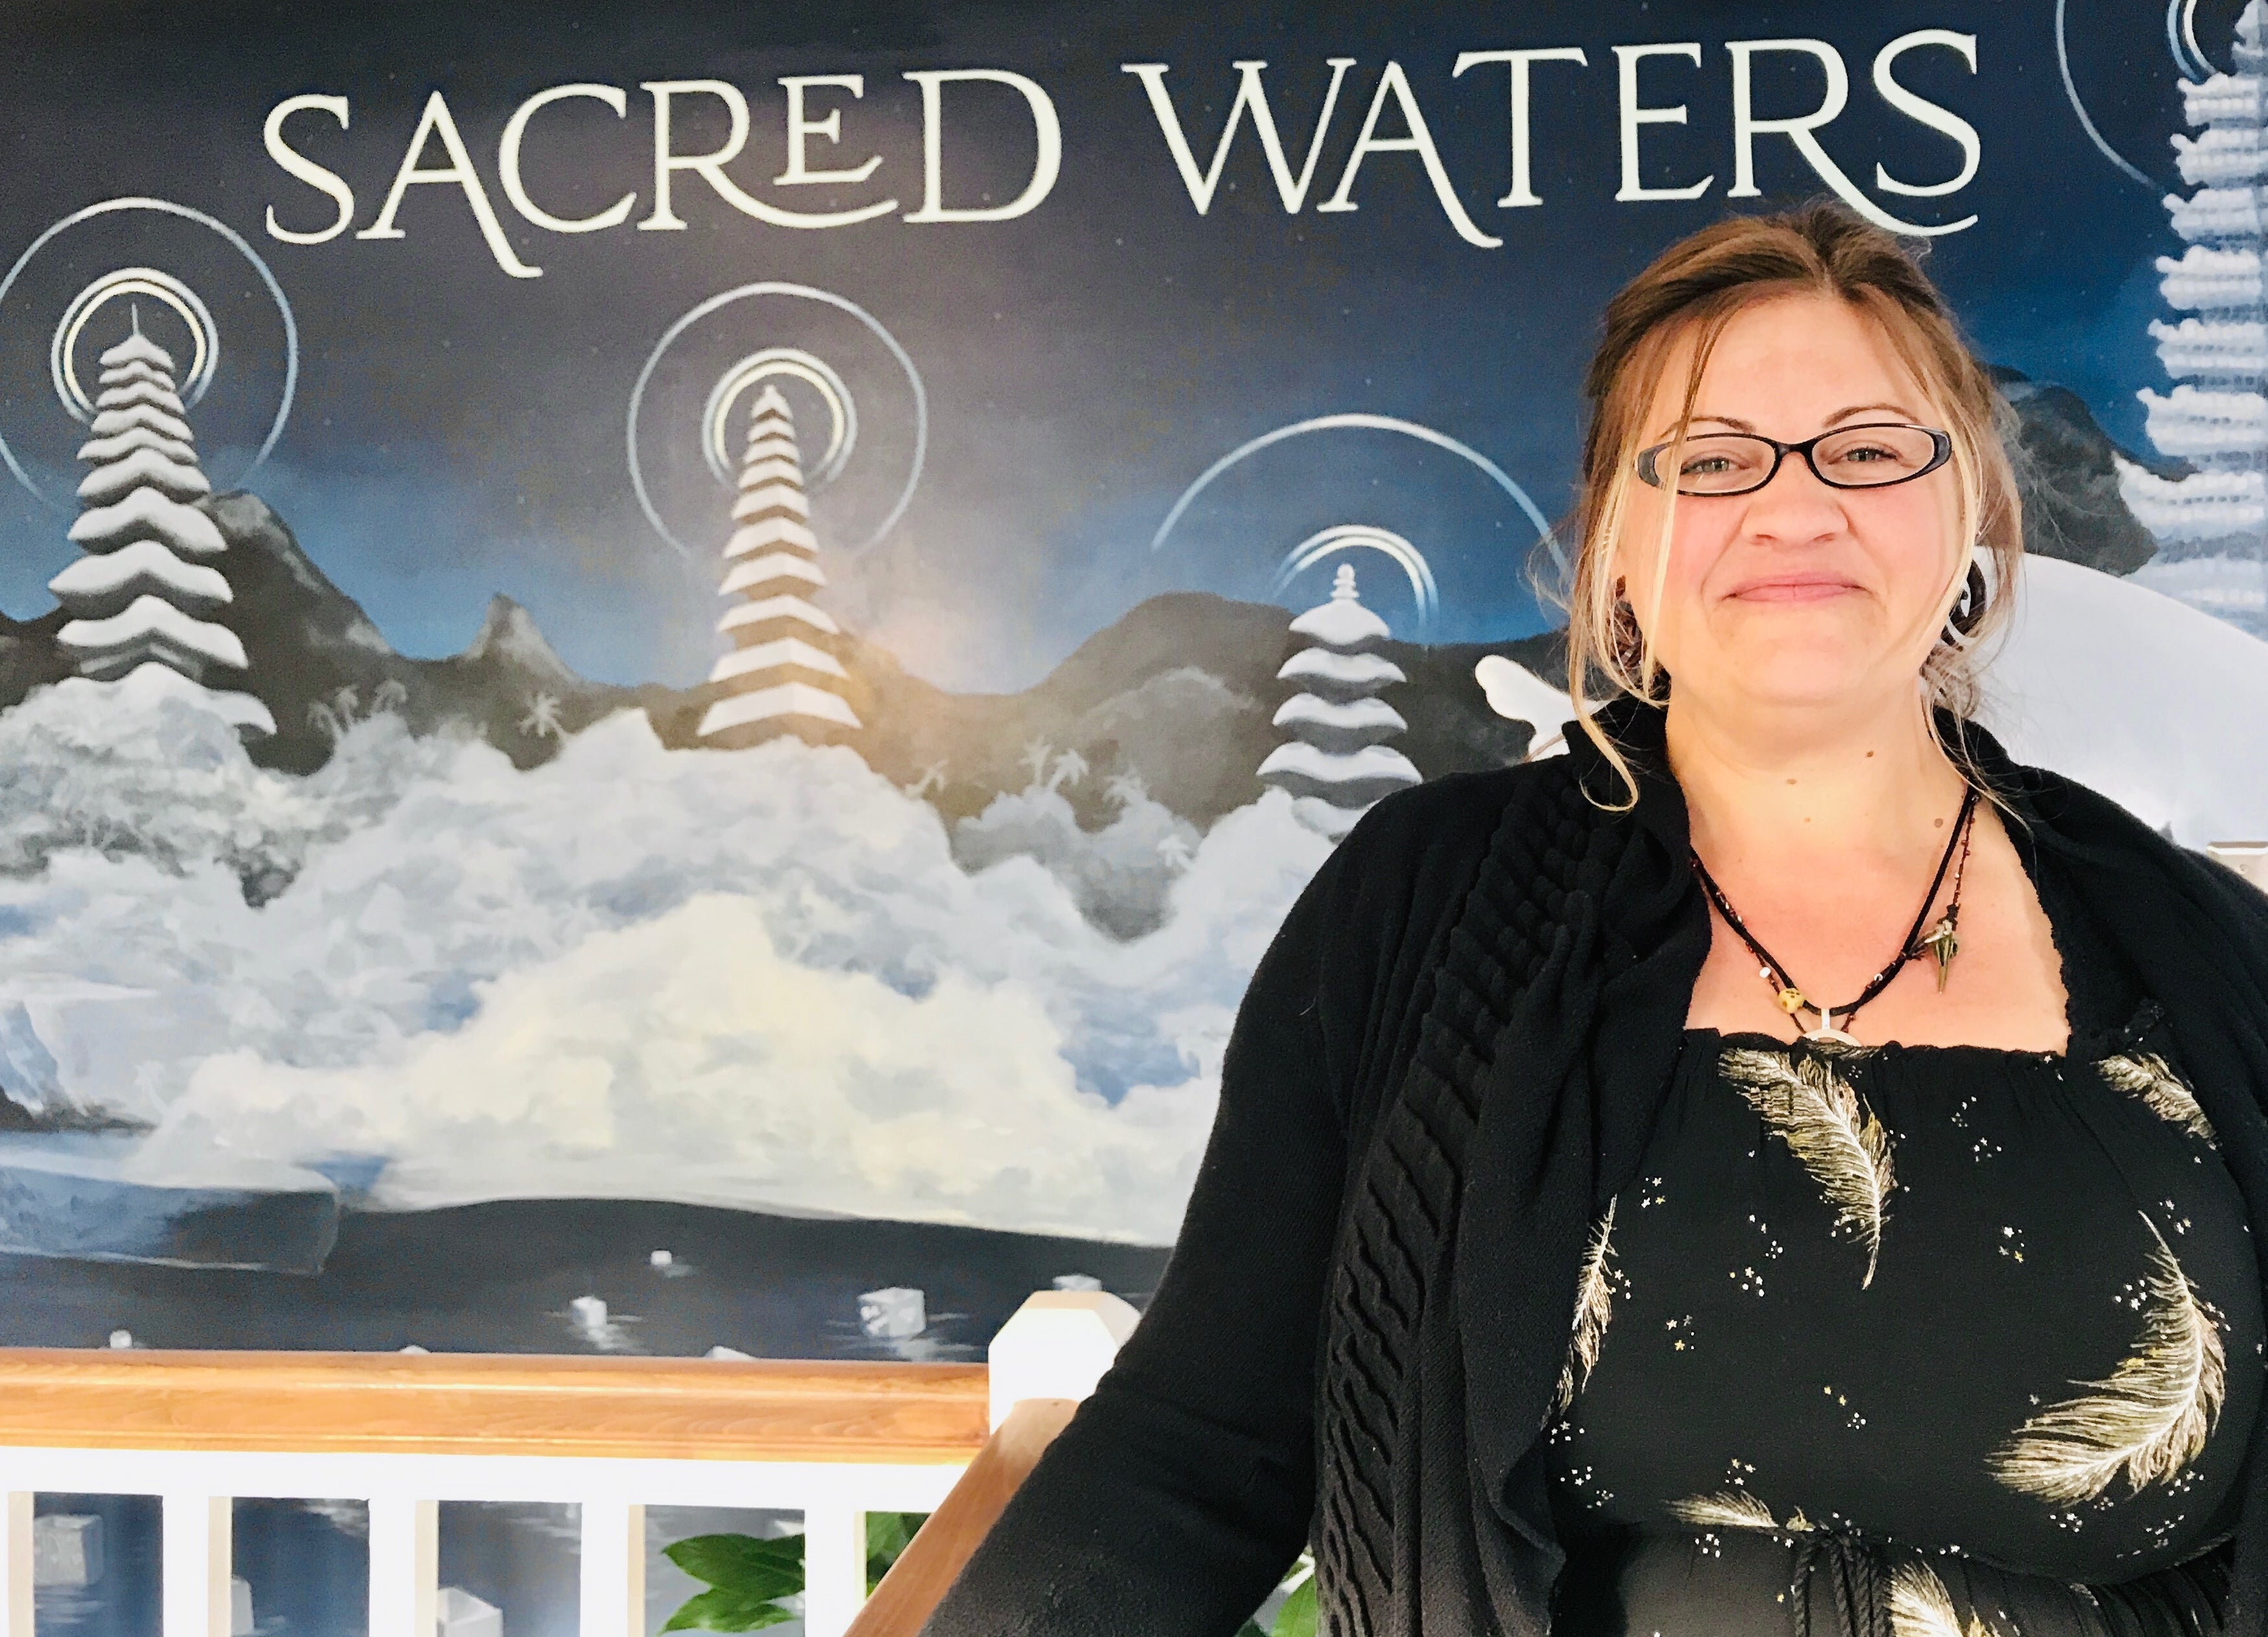 Camille stands in front of a wall with Sacred Waters logo on it